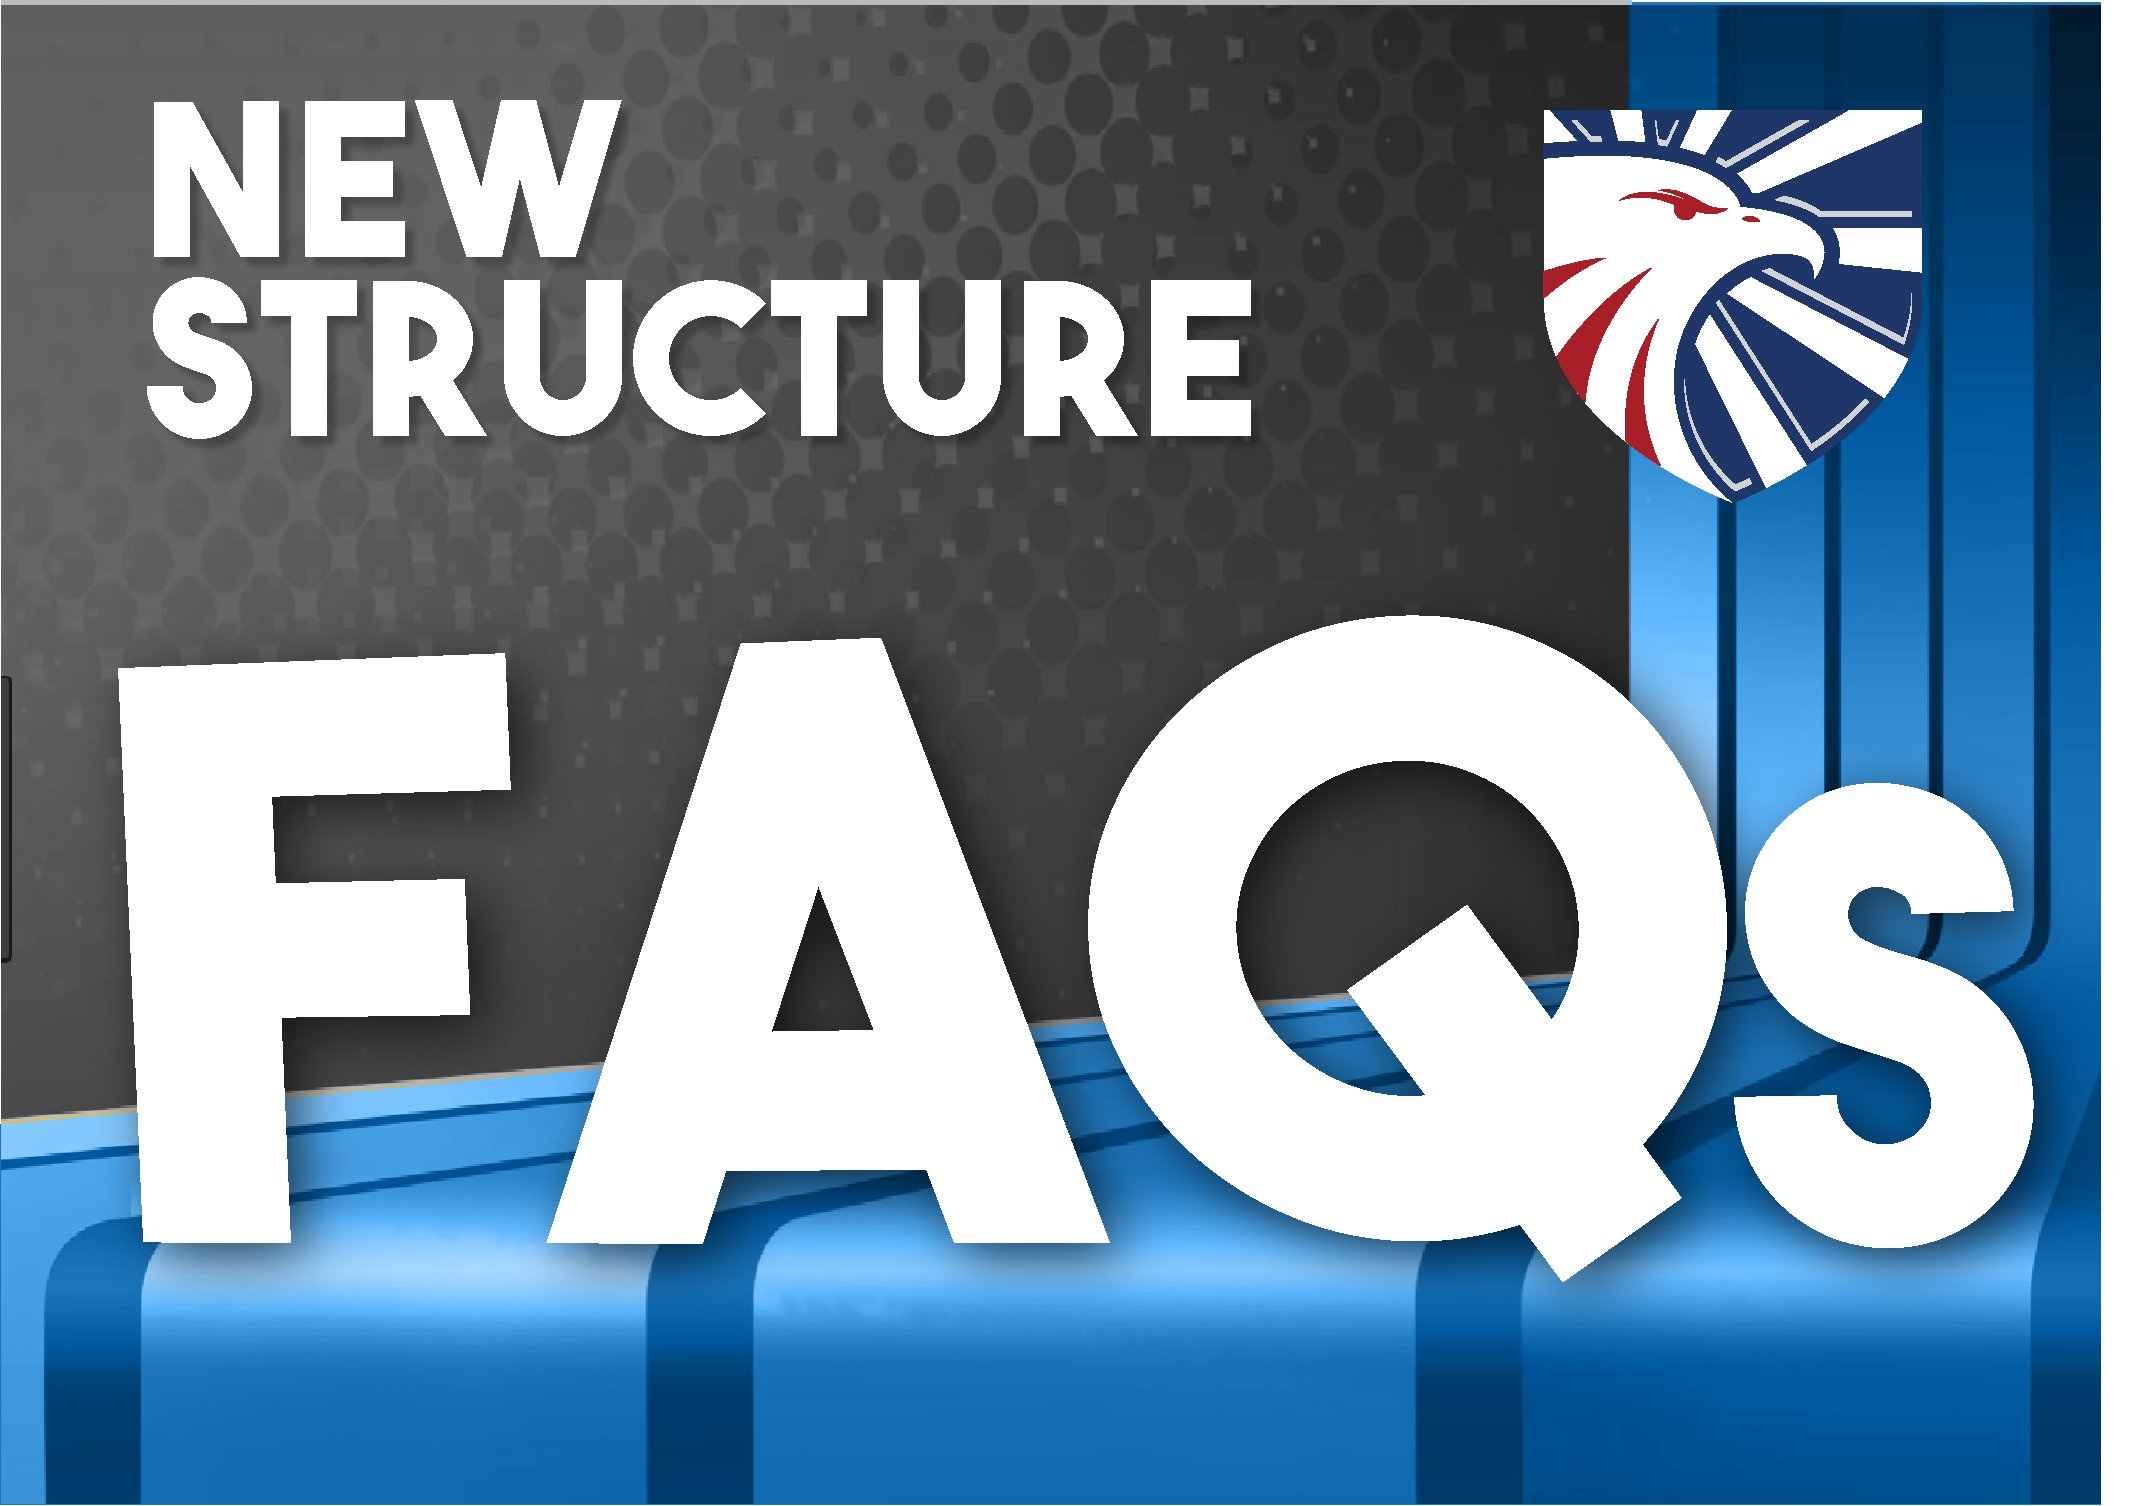 New Structure FAQs